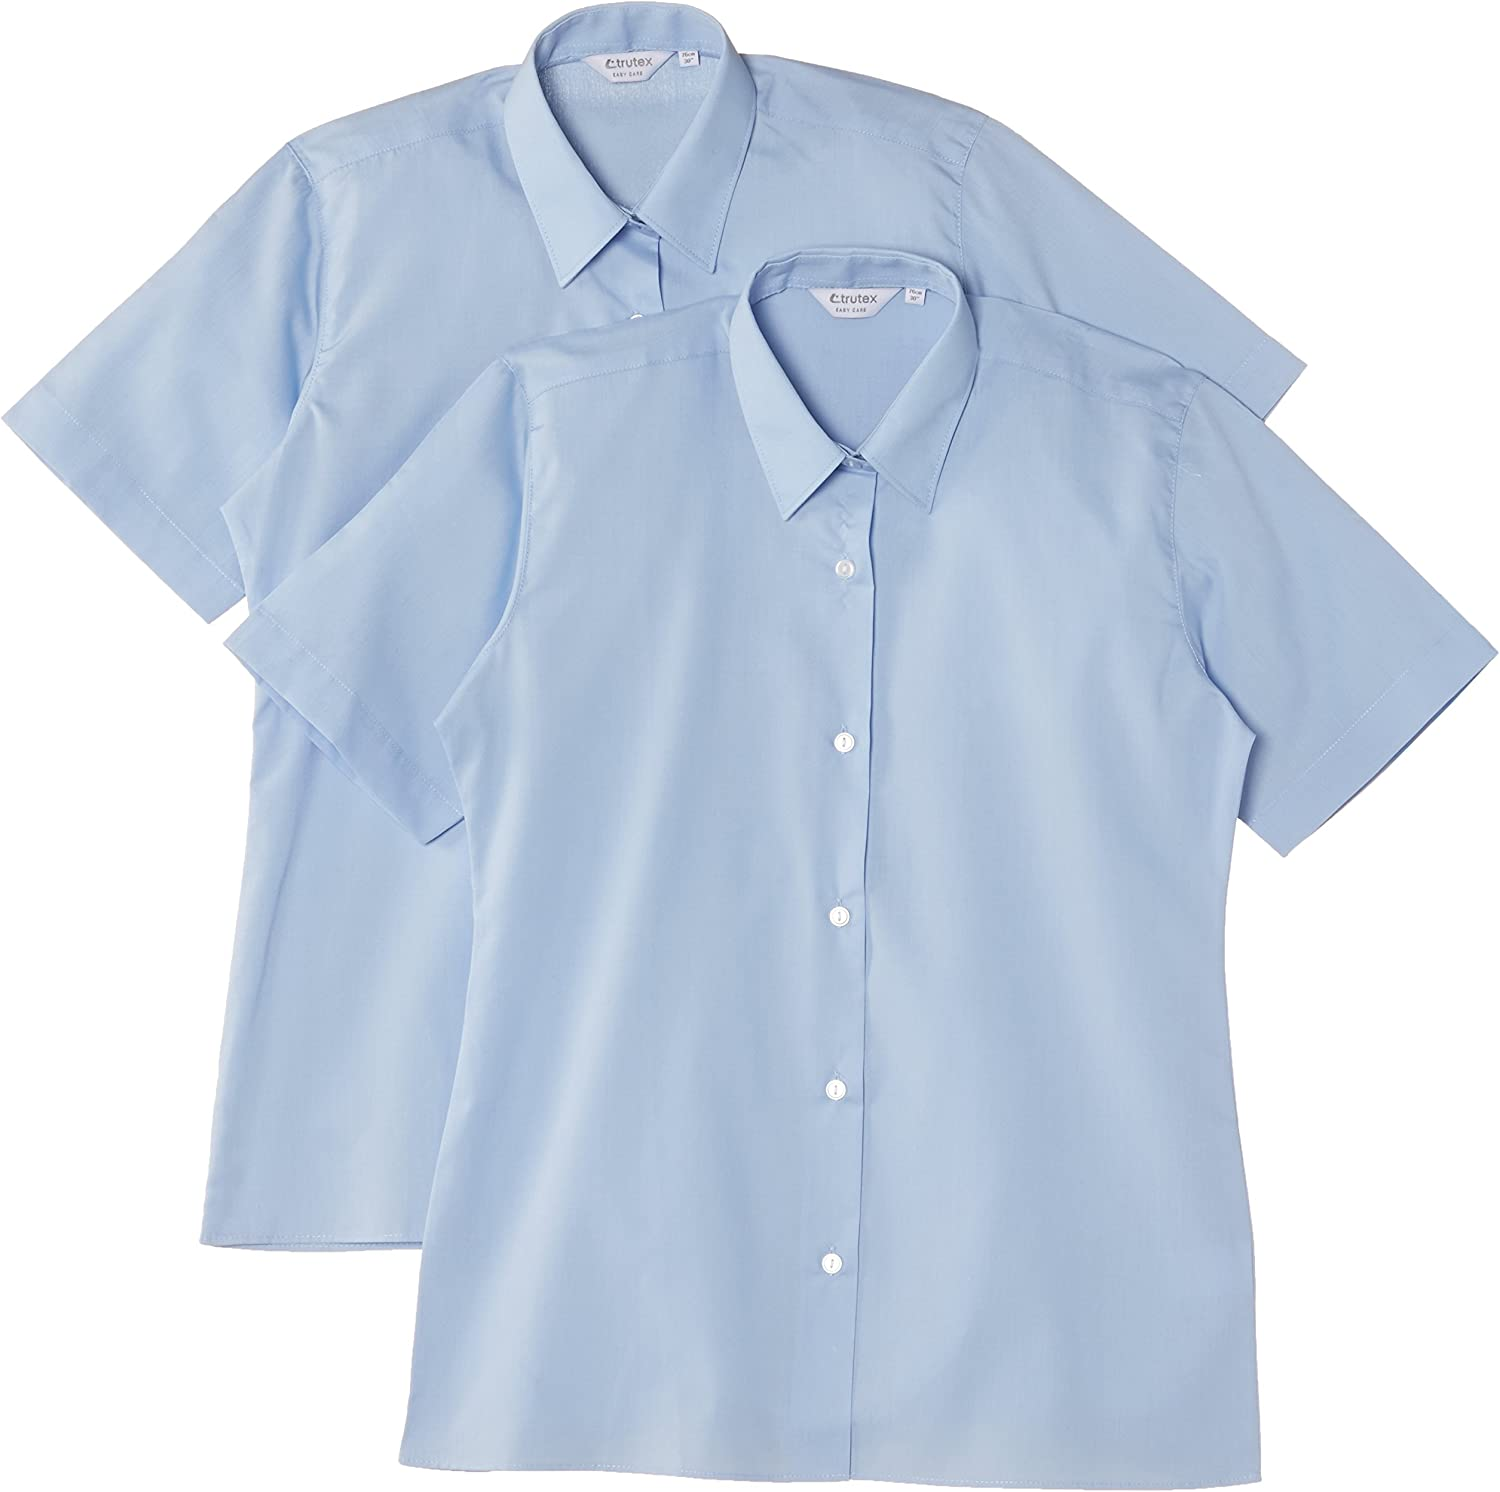 Trutex Limited Girls Short Sleeve Easy Care Plain Blouse pack of 2